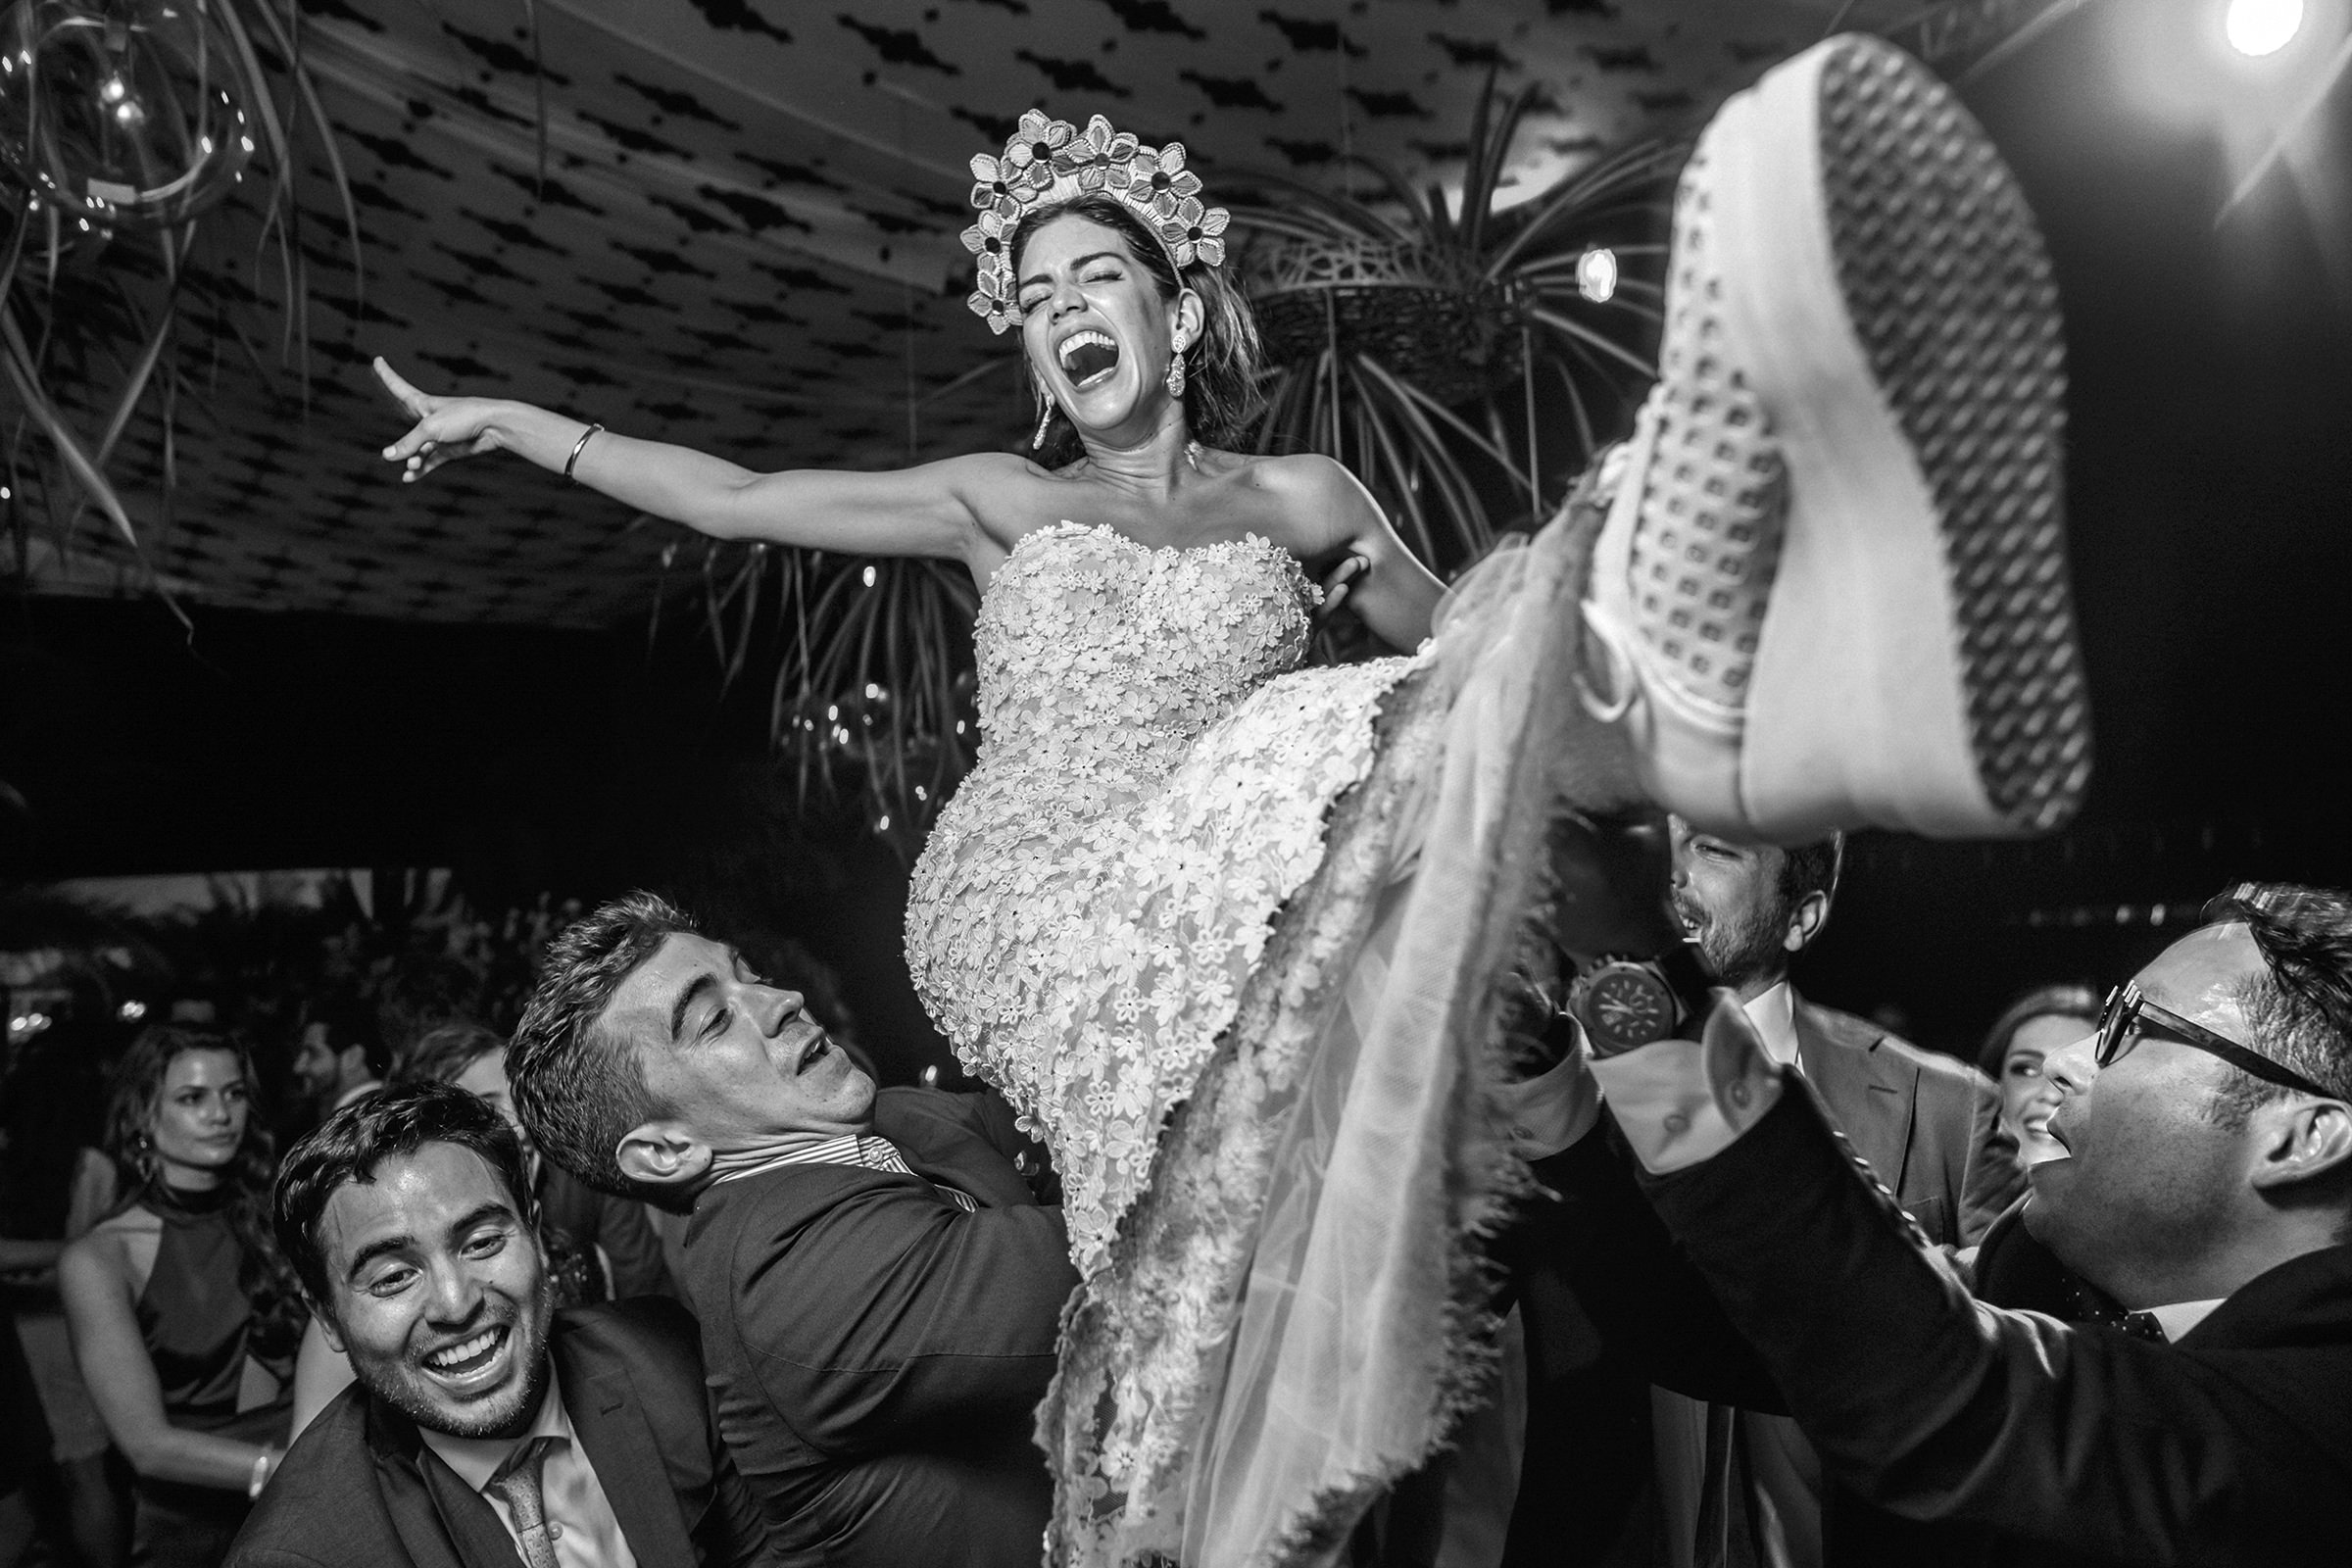 Bride laughing carried on shoulders of guests during reception, by Victor Marti, El Marco Rojo